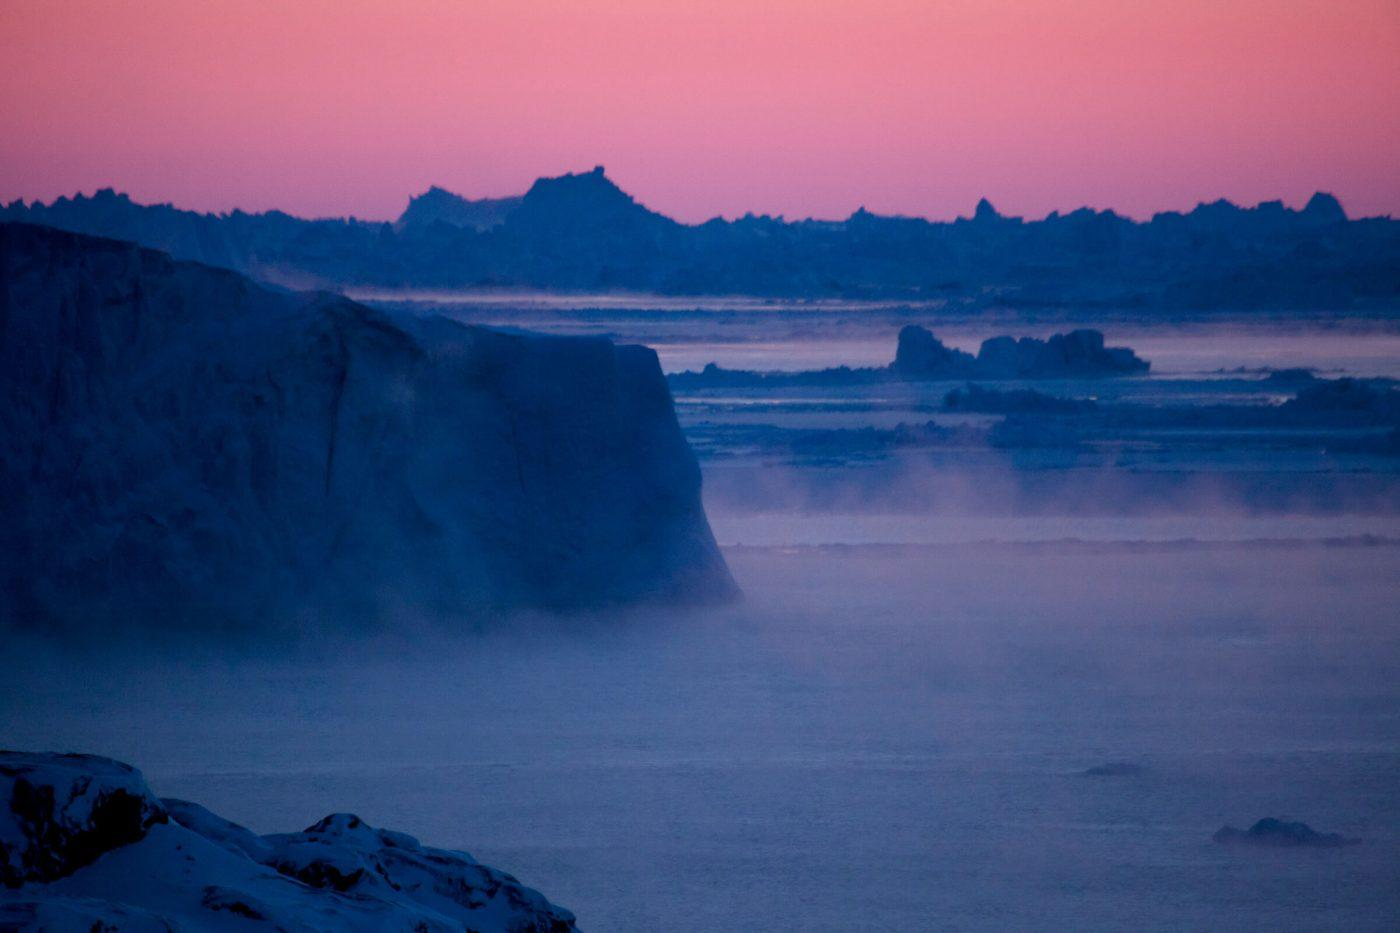 Icebergs shrouded in ice mist near the Ilulissat Ice Fjord in Greenland, by David Trood